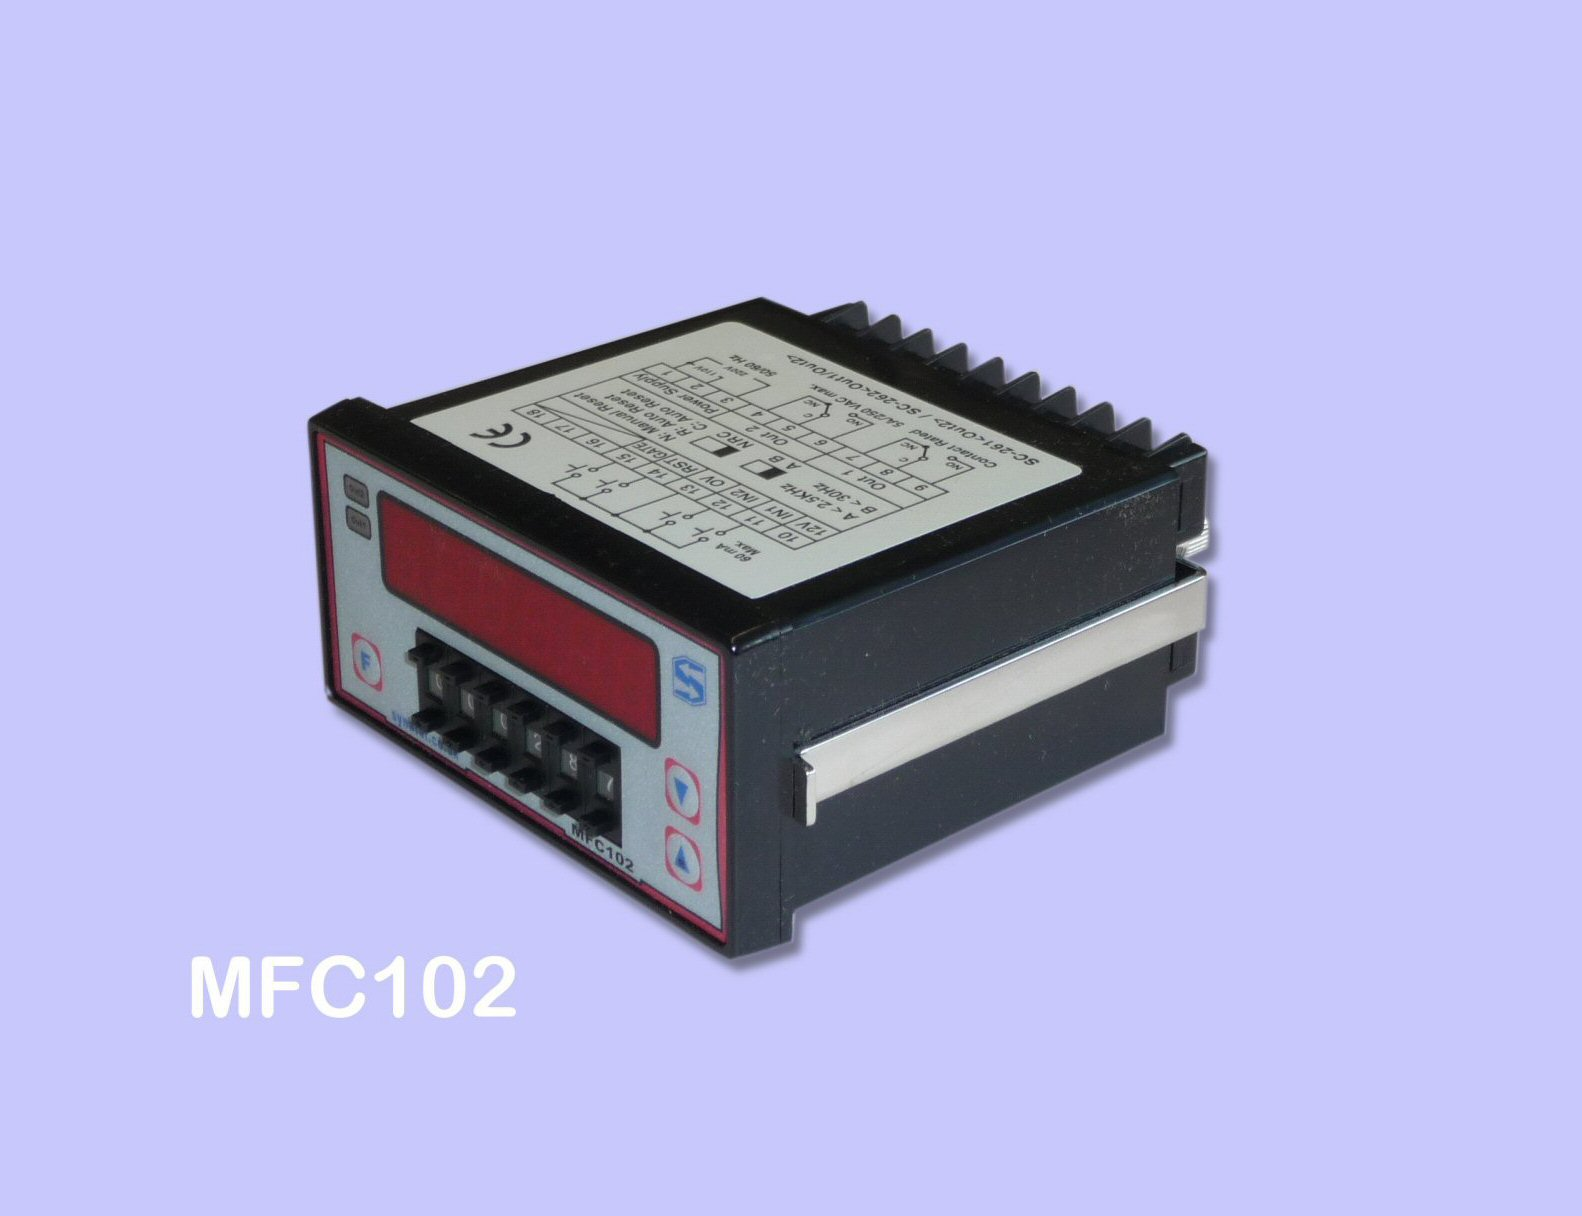 MFC102 counter front view